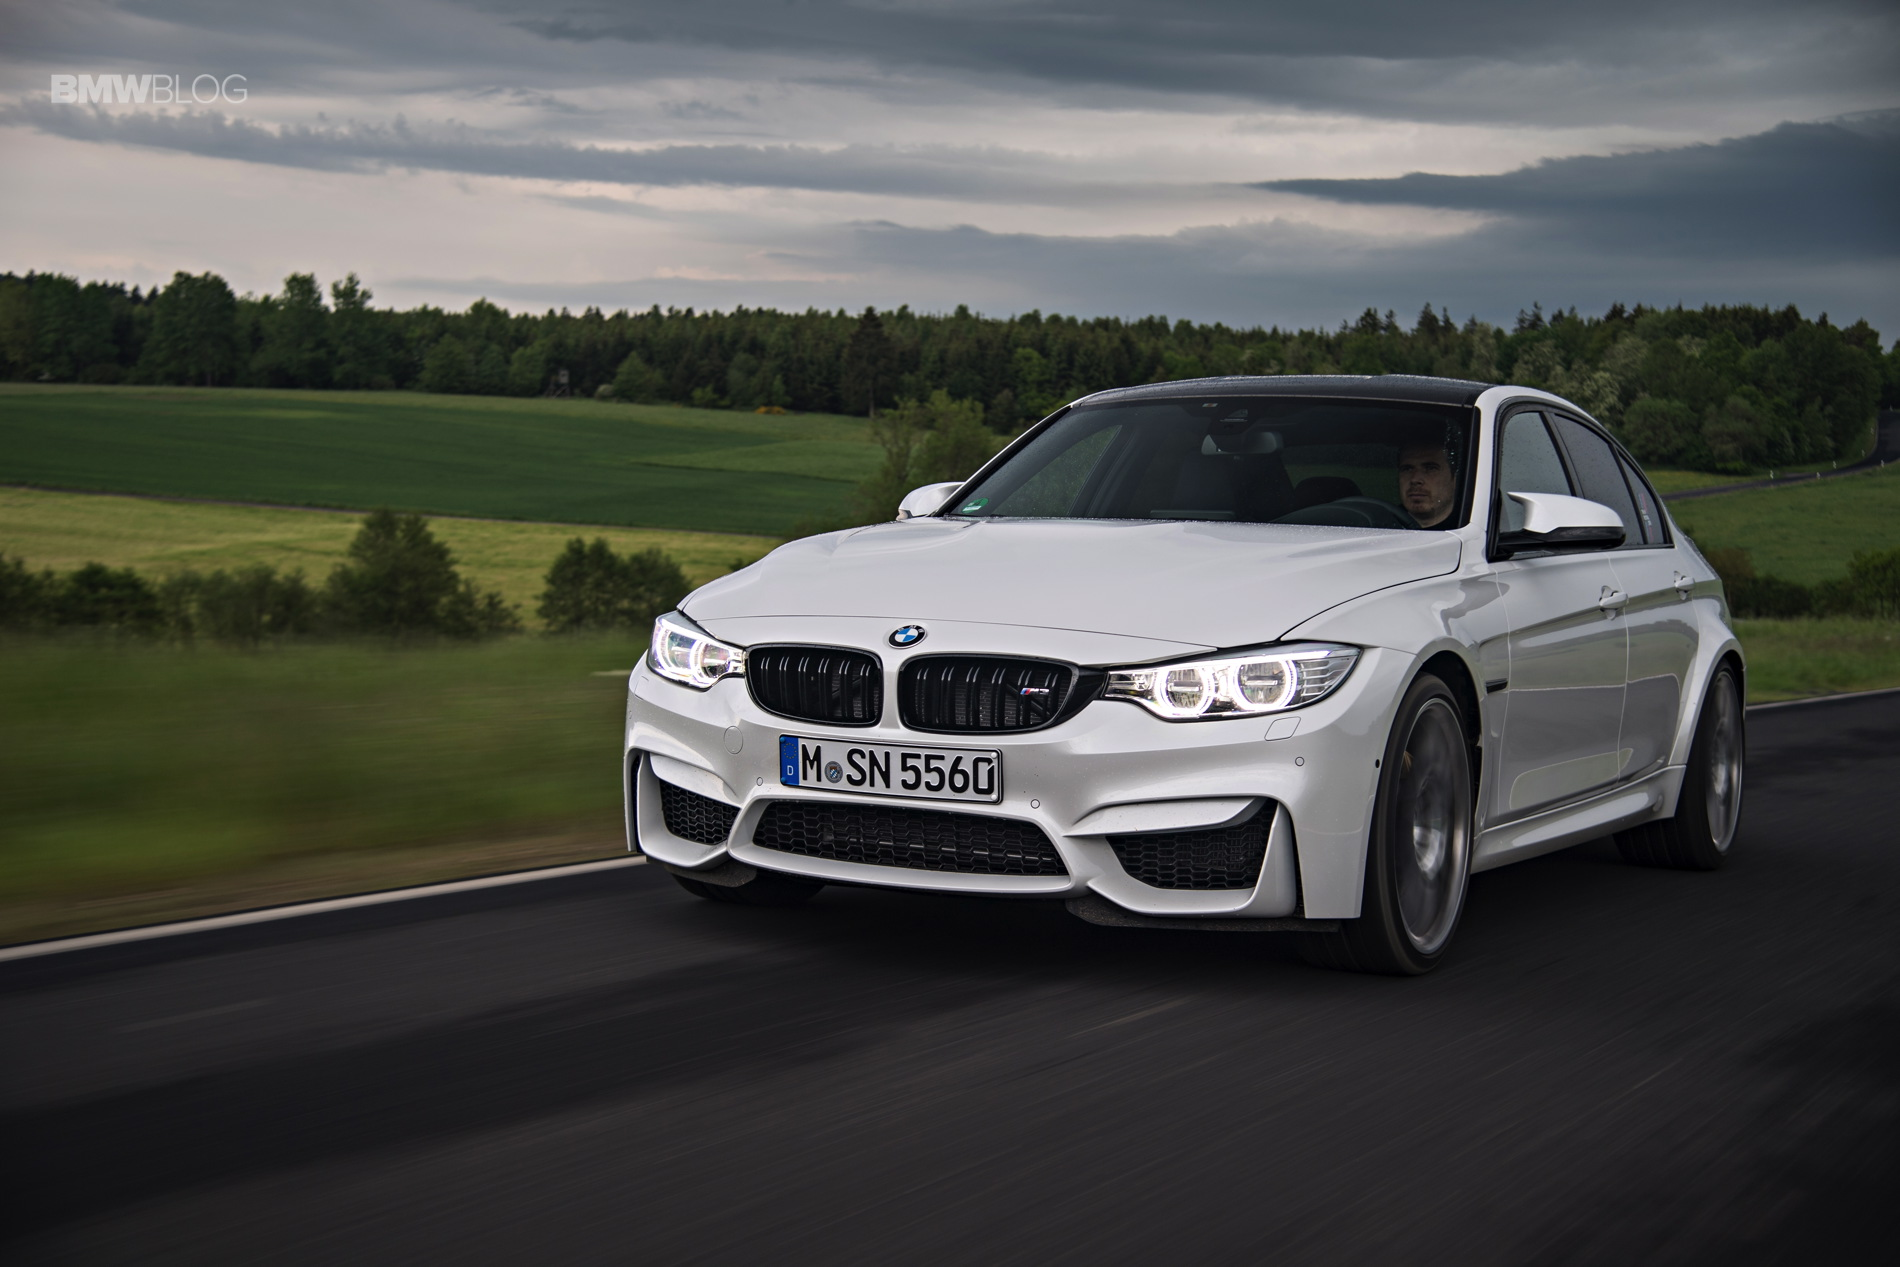 Video Nick Murray Compares His Bmw M4 To An M3 Competition Package